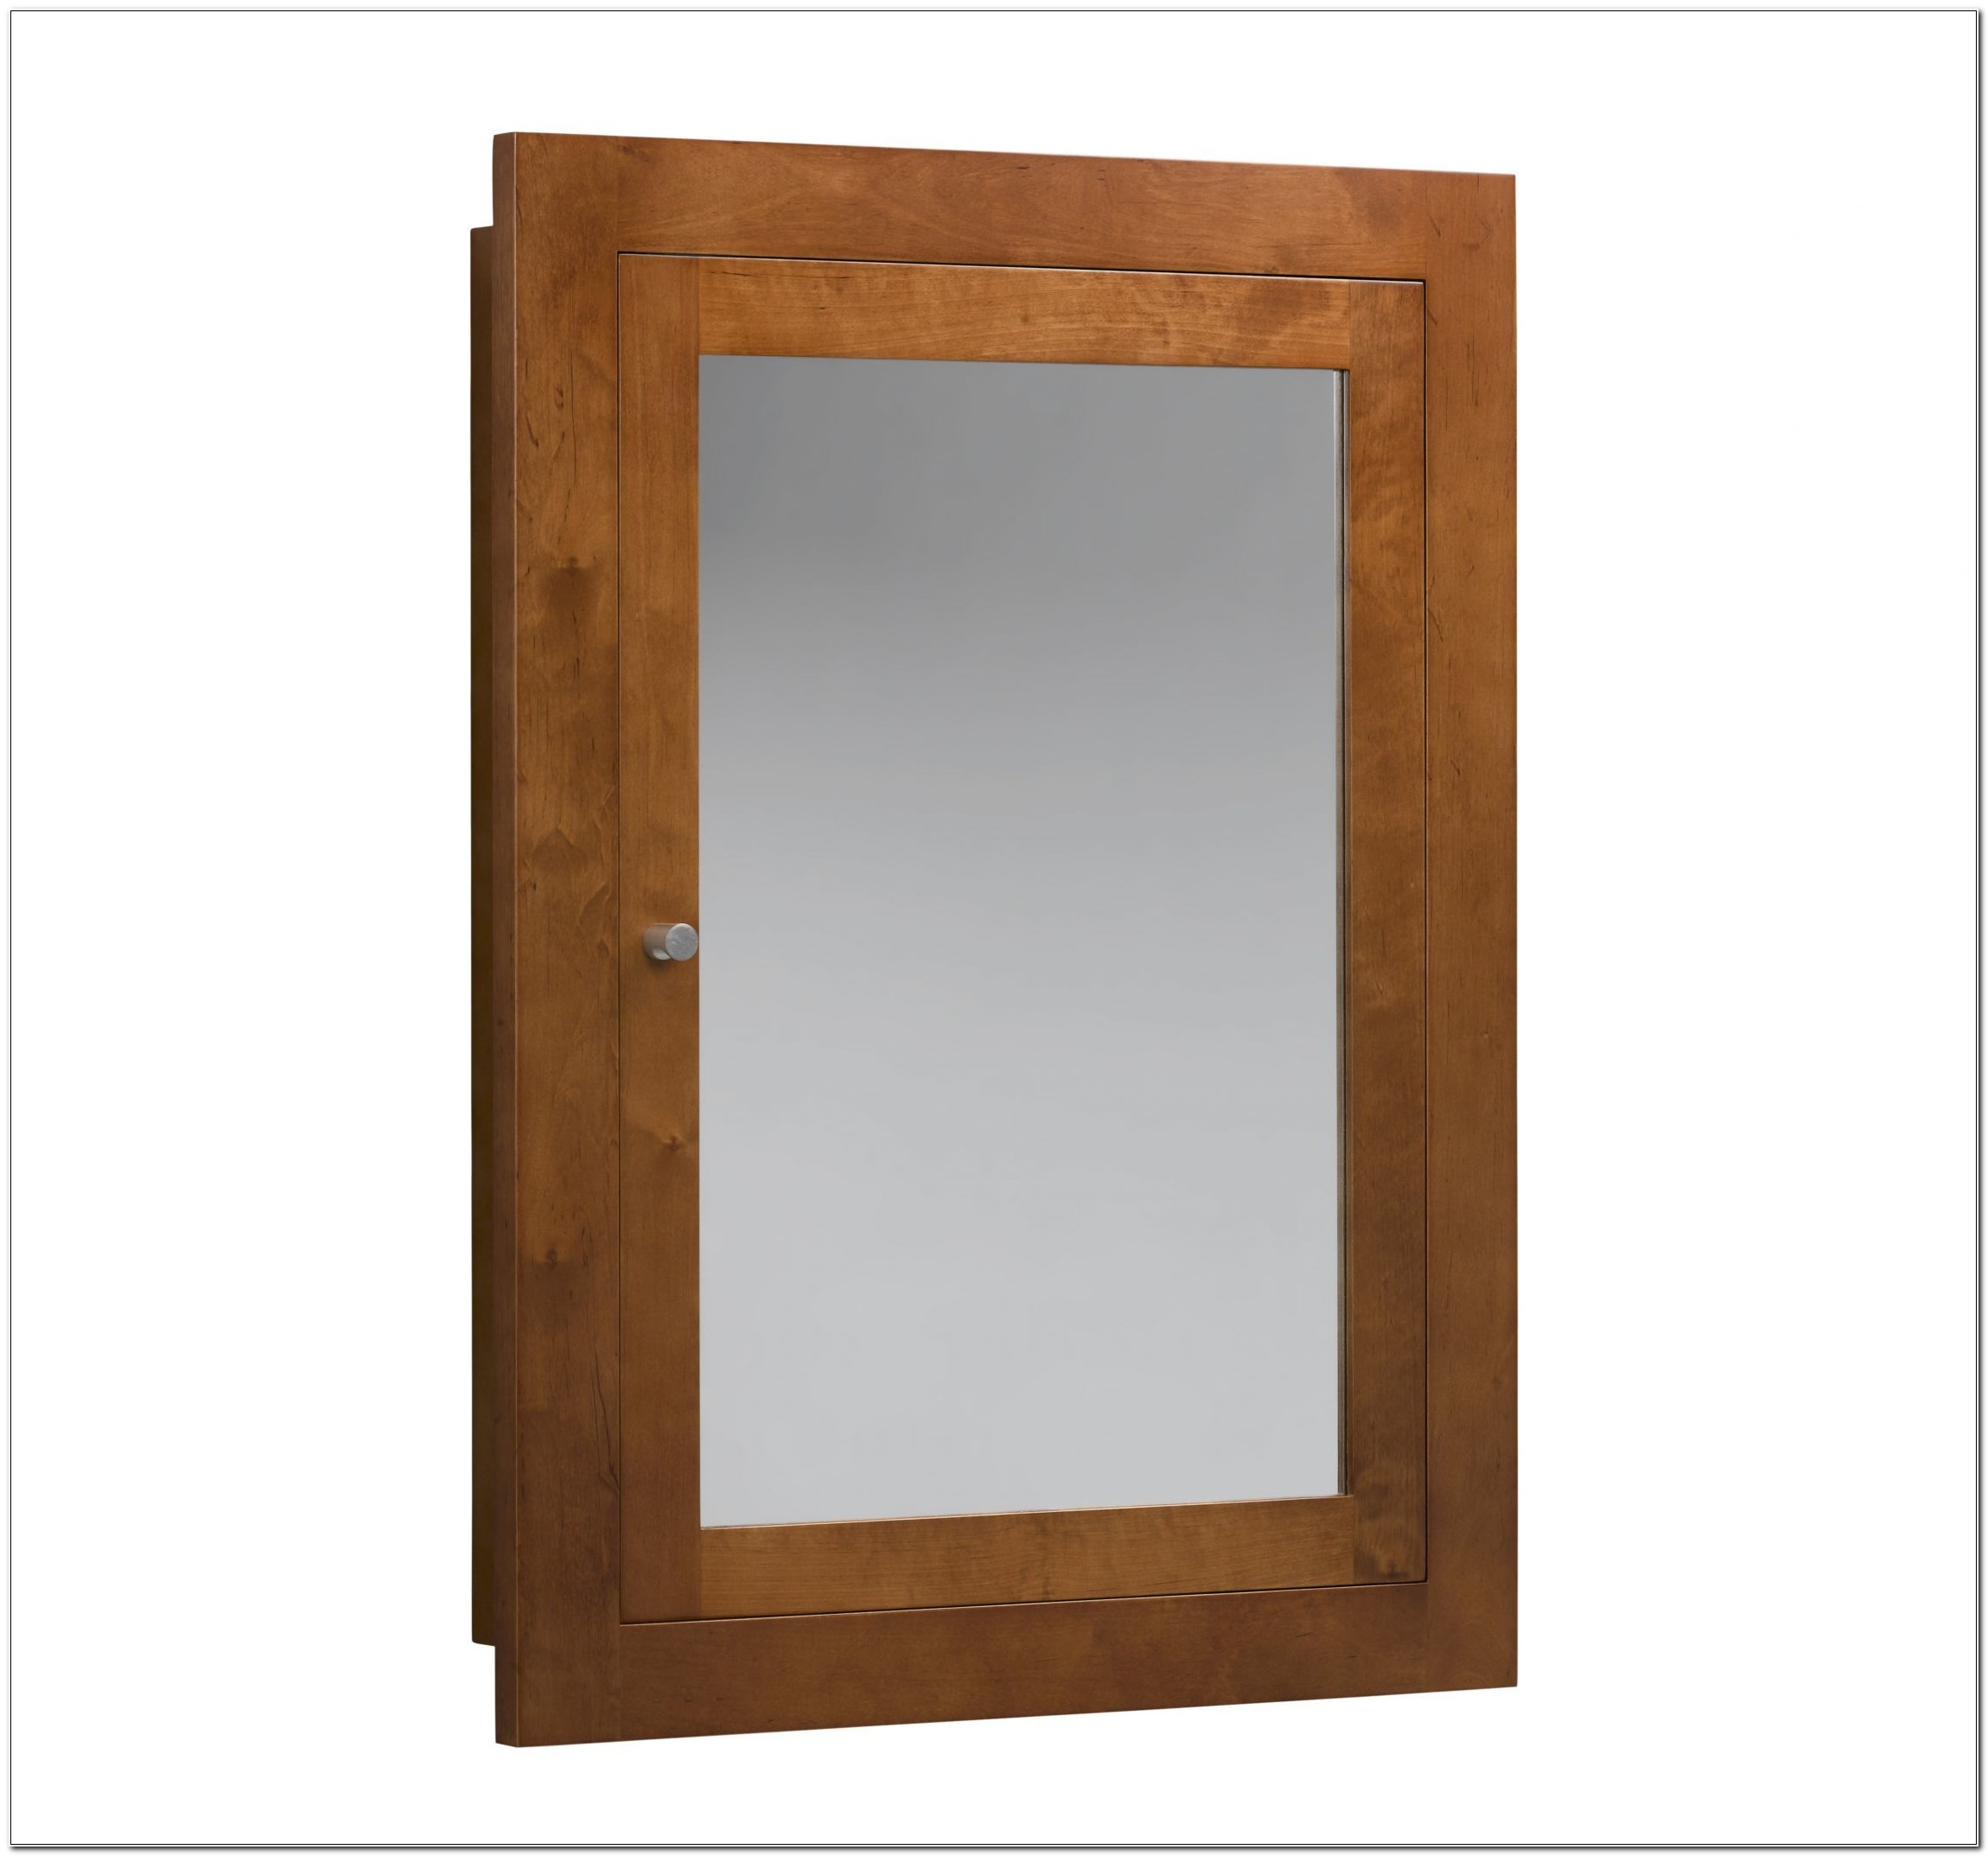 Unfinished Wood Framed Recessed Medicine Cabinet